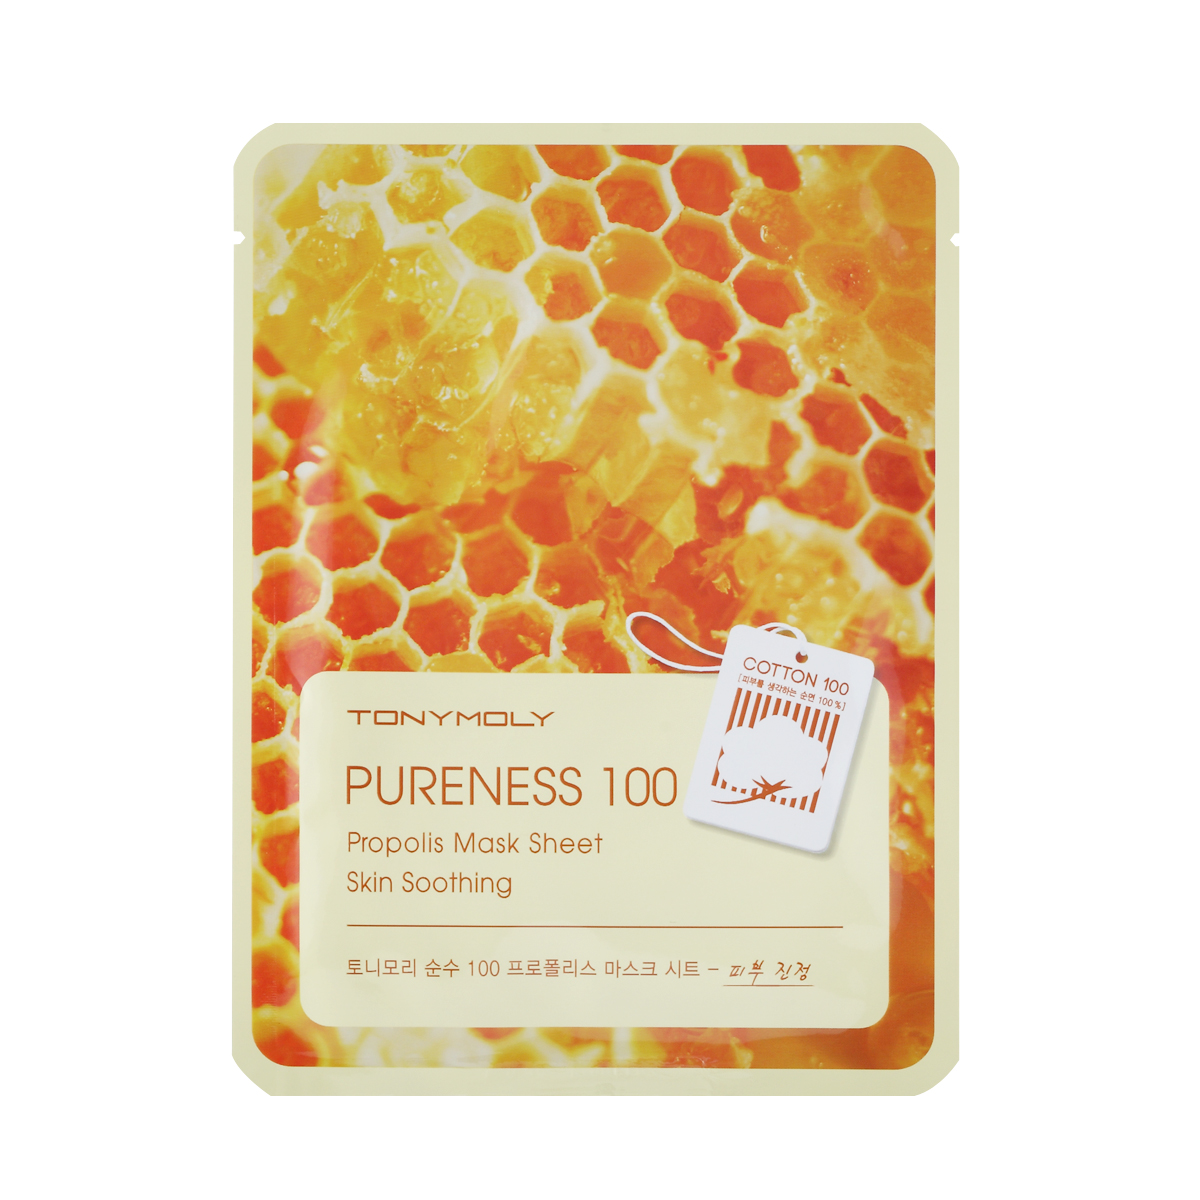 TonyMoly Тканевая маска с экстрактом прополиса Pureness 100 Propolis Mask Sheet-Skin Calming, 21 мл tony moly sheet gel mask pureness 100 collagen маска тканевая с экстрактом коллагена 21 мл